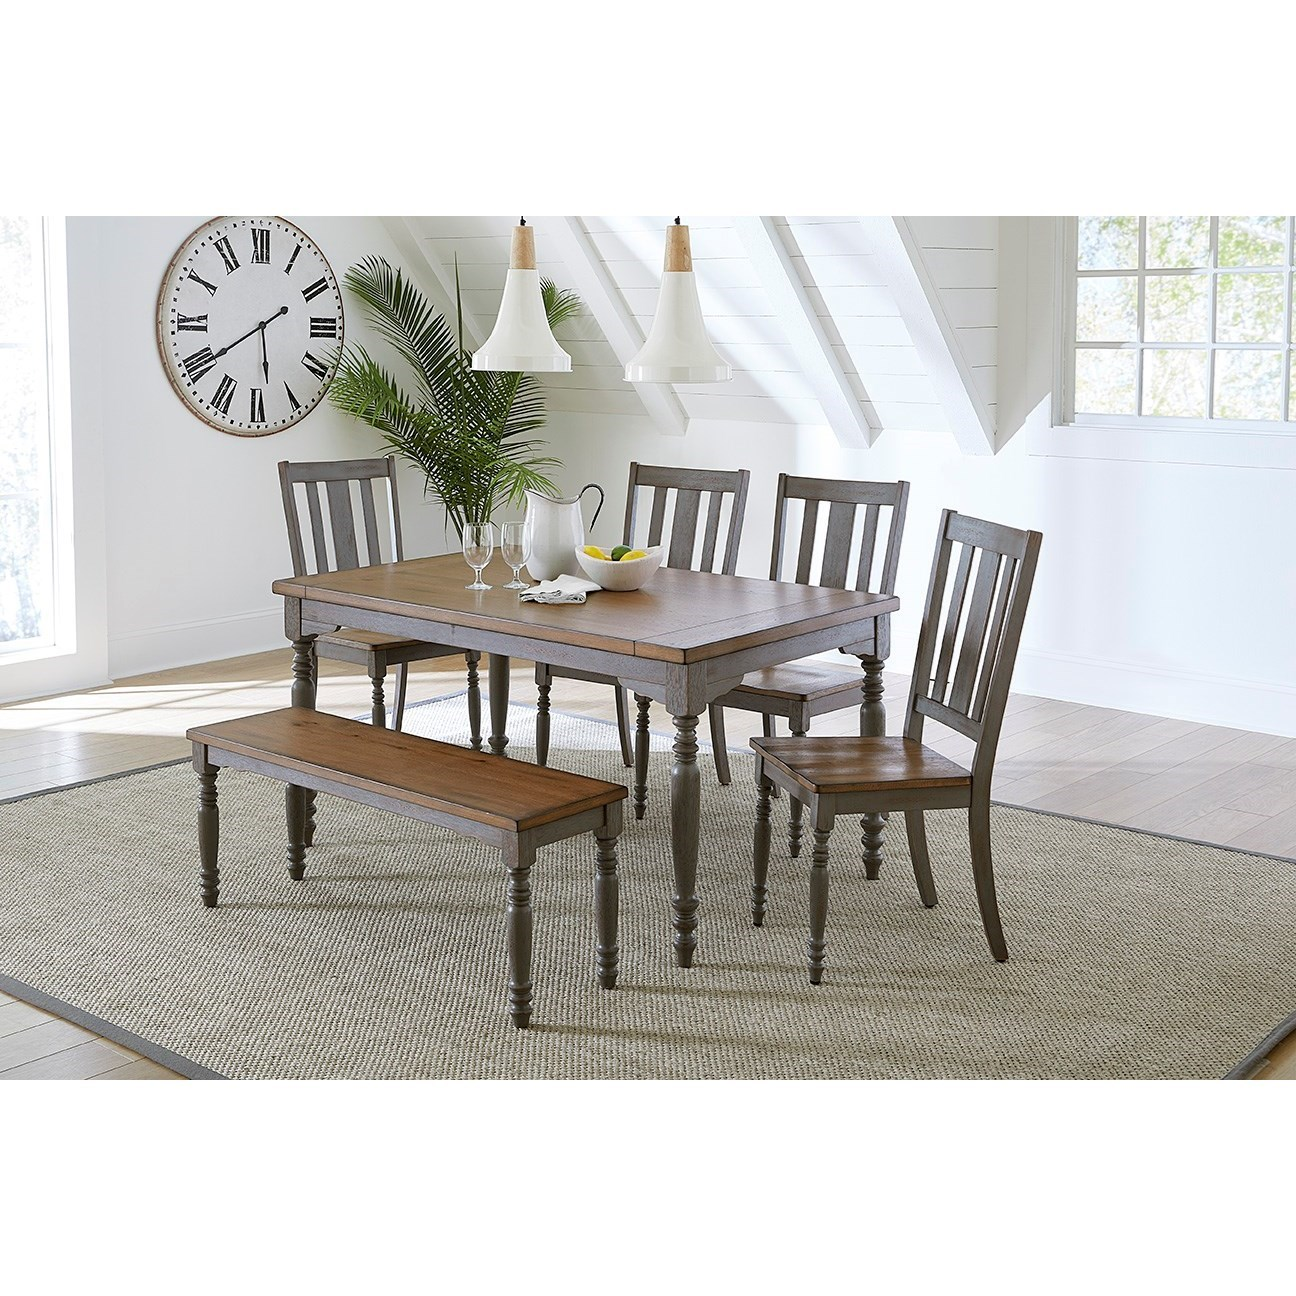 Progressive Furniture Midori Shabby Chic Table And Chair Set With Bench Lindy S Furniture Company Table Chair Set With Bench